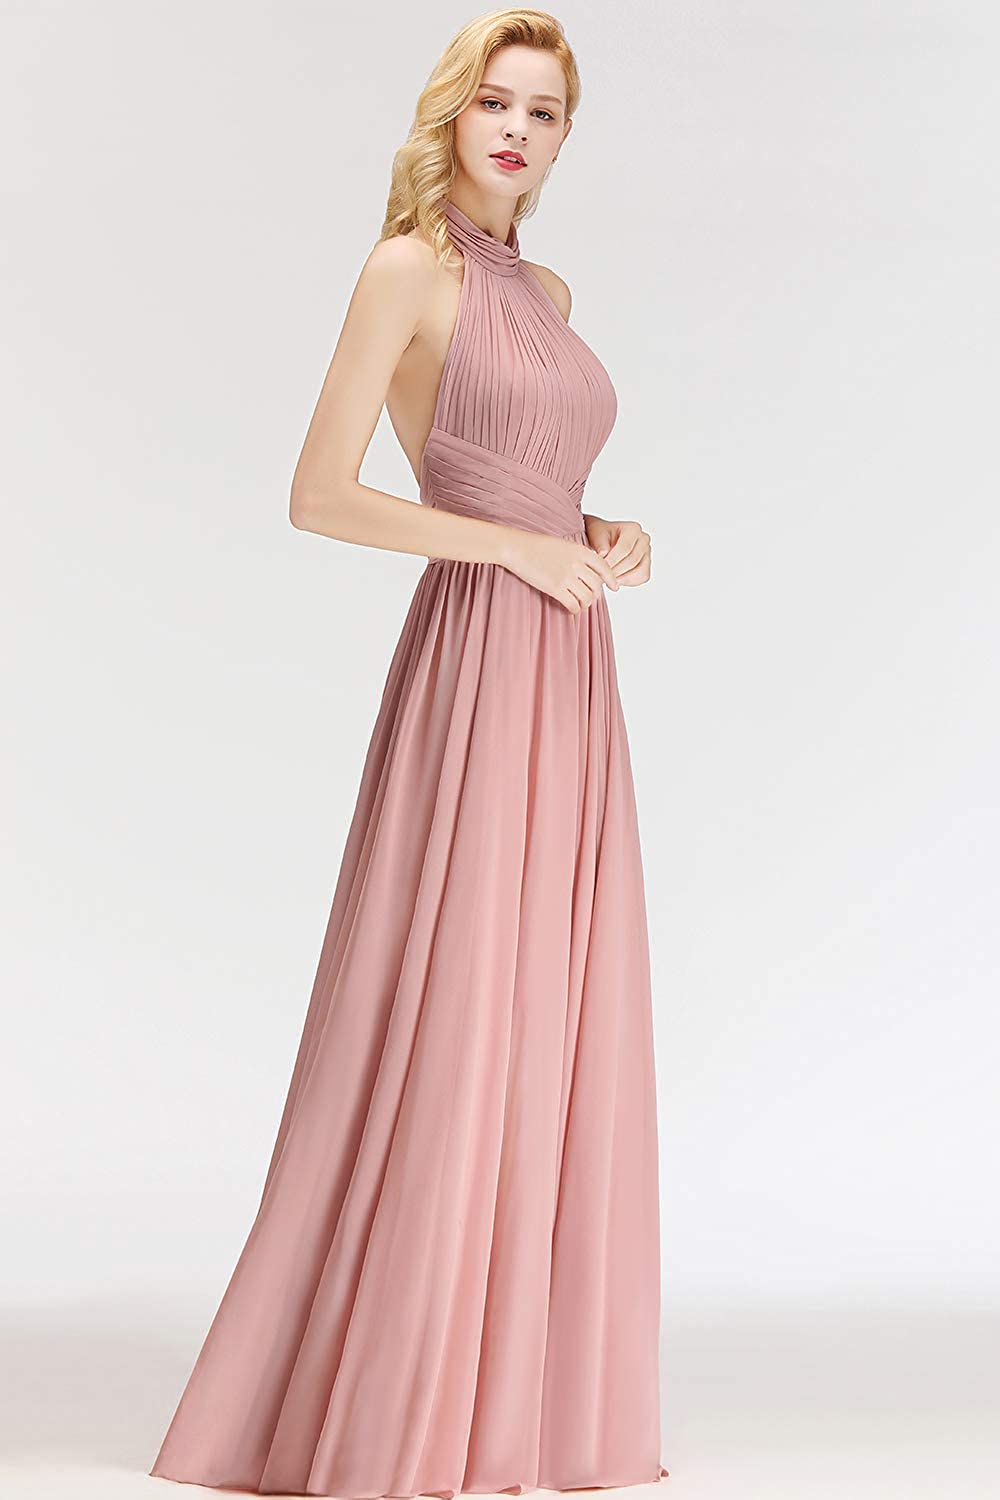 MisShow Womens Vintage Halter Backless Wedding Bridesmaid Evening Long Dress